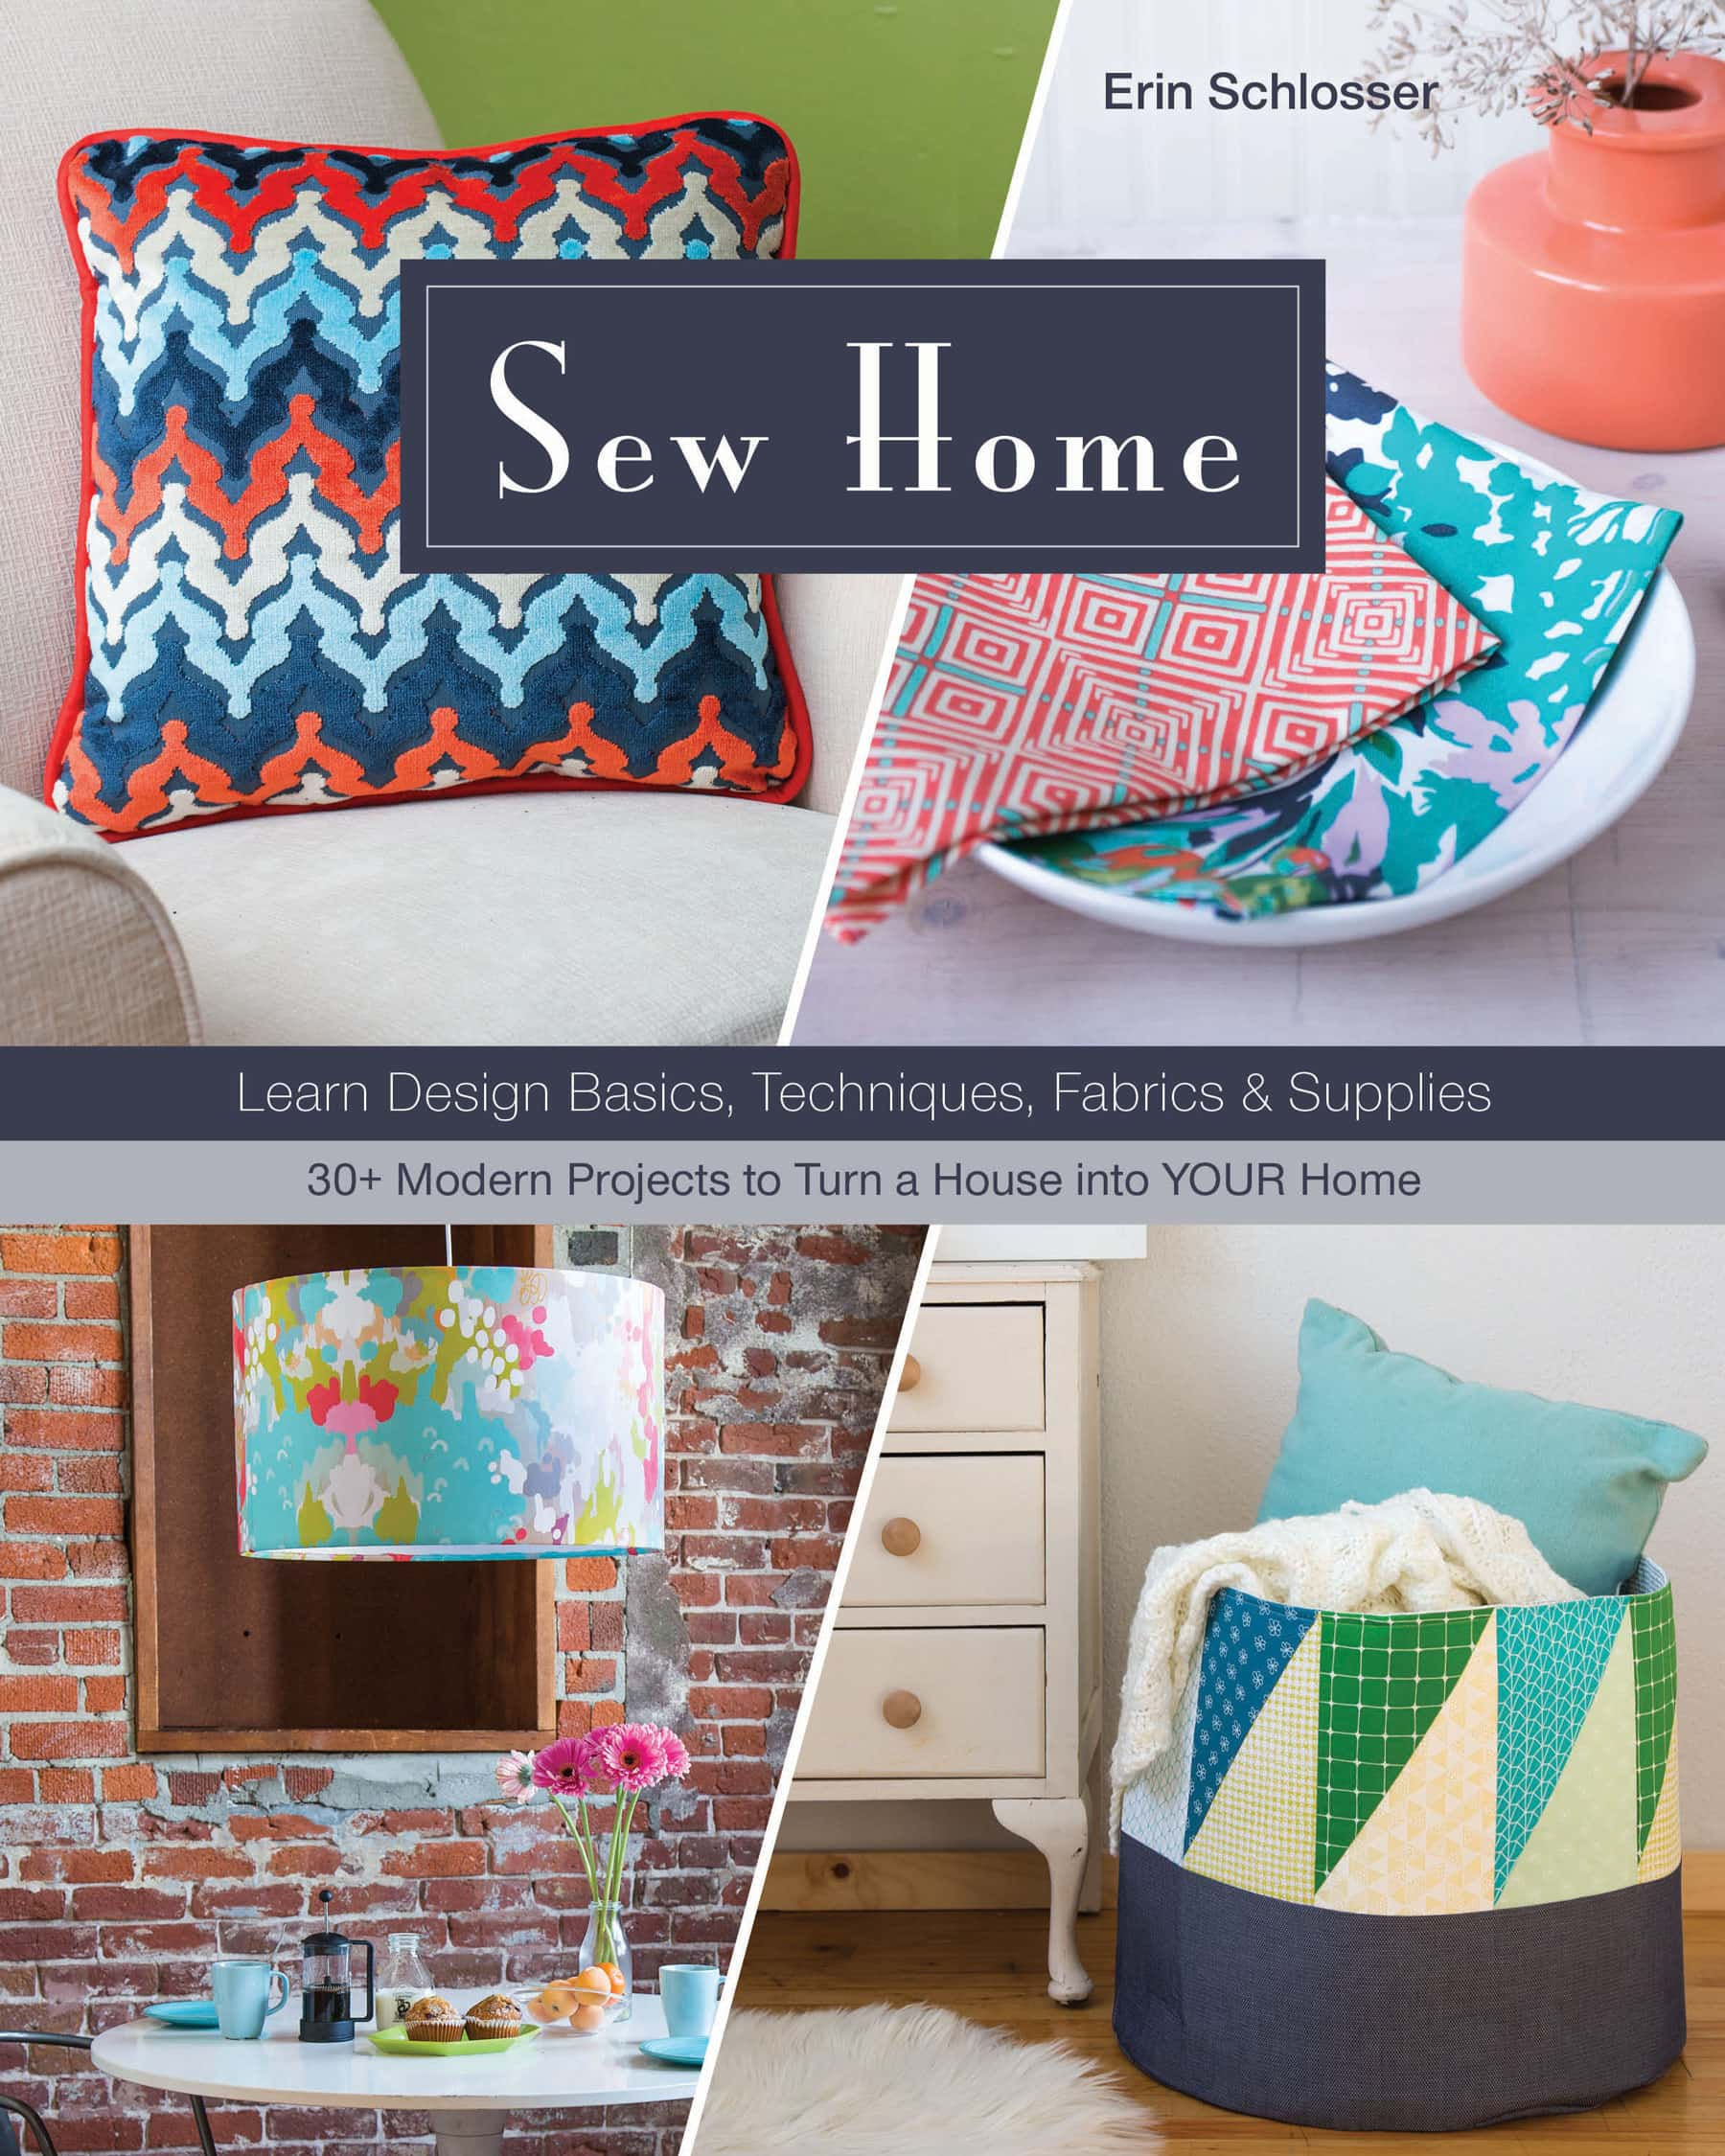 Sew Home Blog Tour {Giveaway}